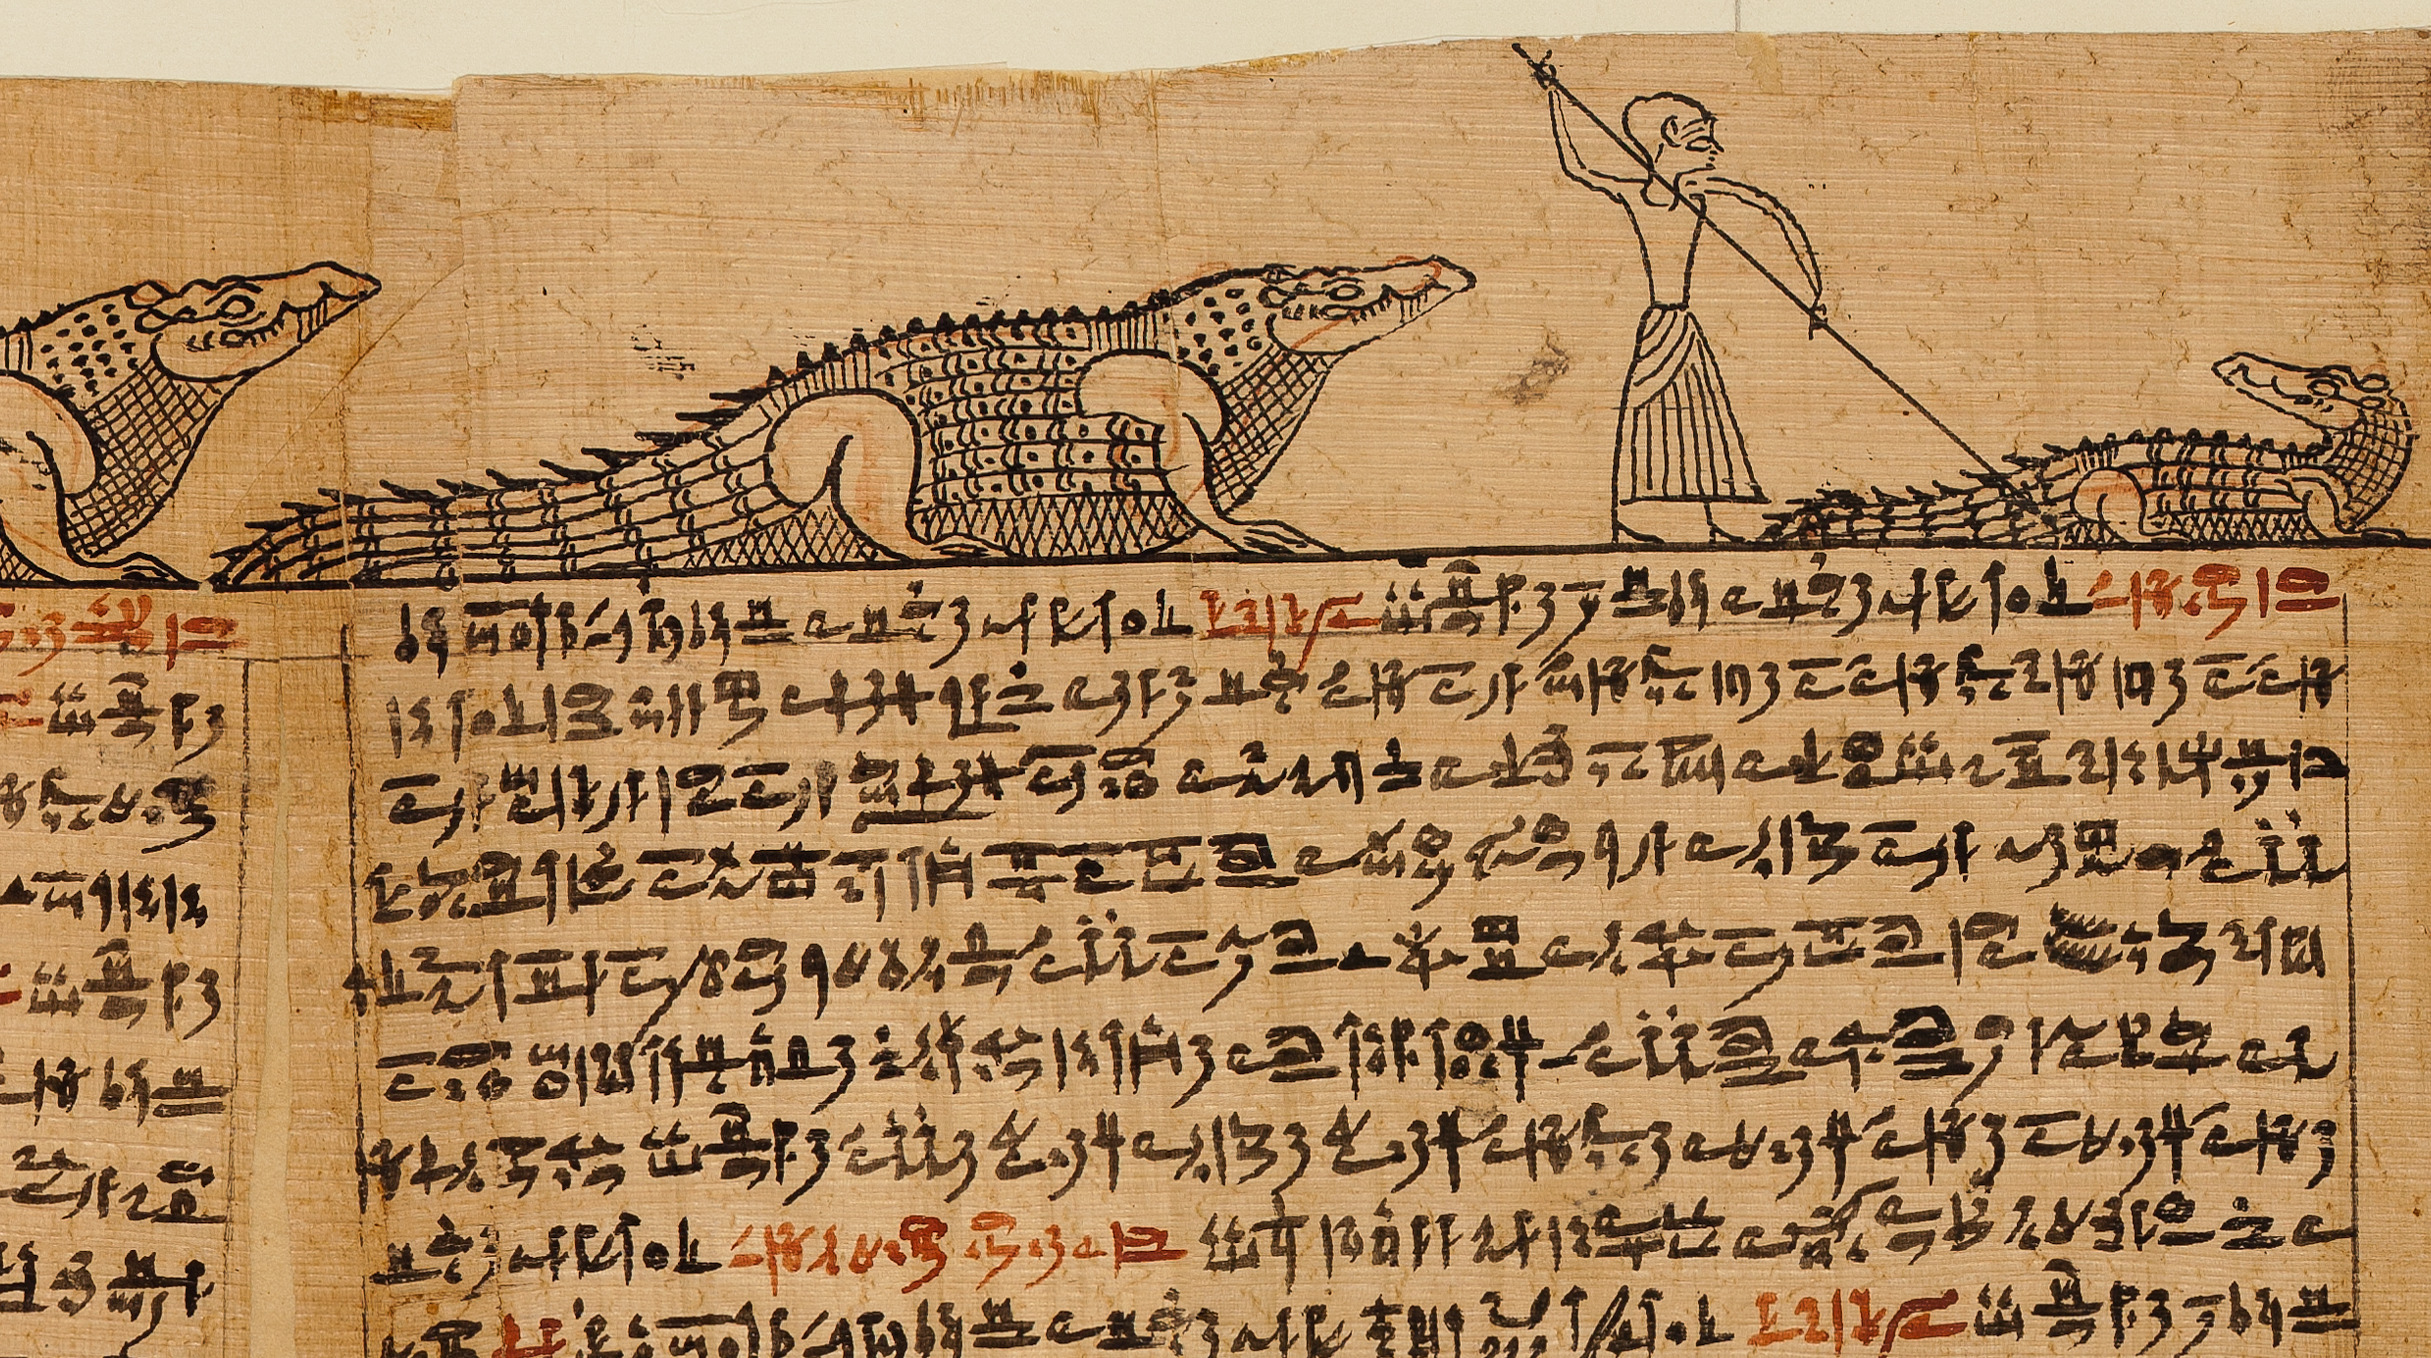 croc dung: a wonderful contraceptive! - A page from the Book of the Dead of the Priest of Horus, Imhotep (Imuthes), ca. 332–200 BCE. Courtesy of the Metropolitan Museum of Art.